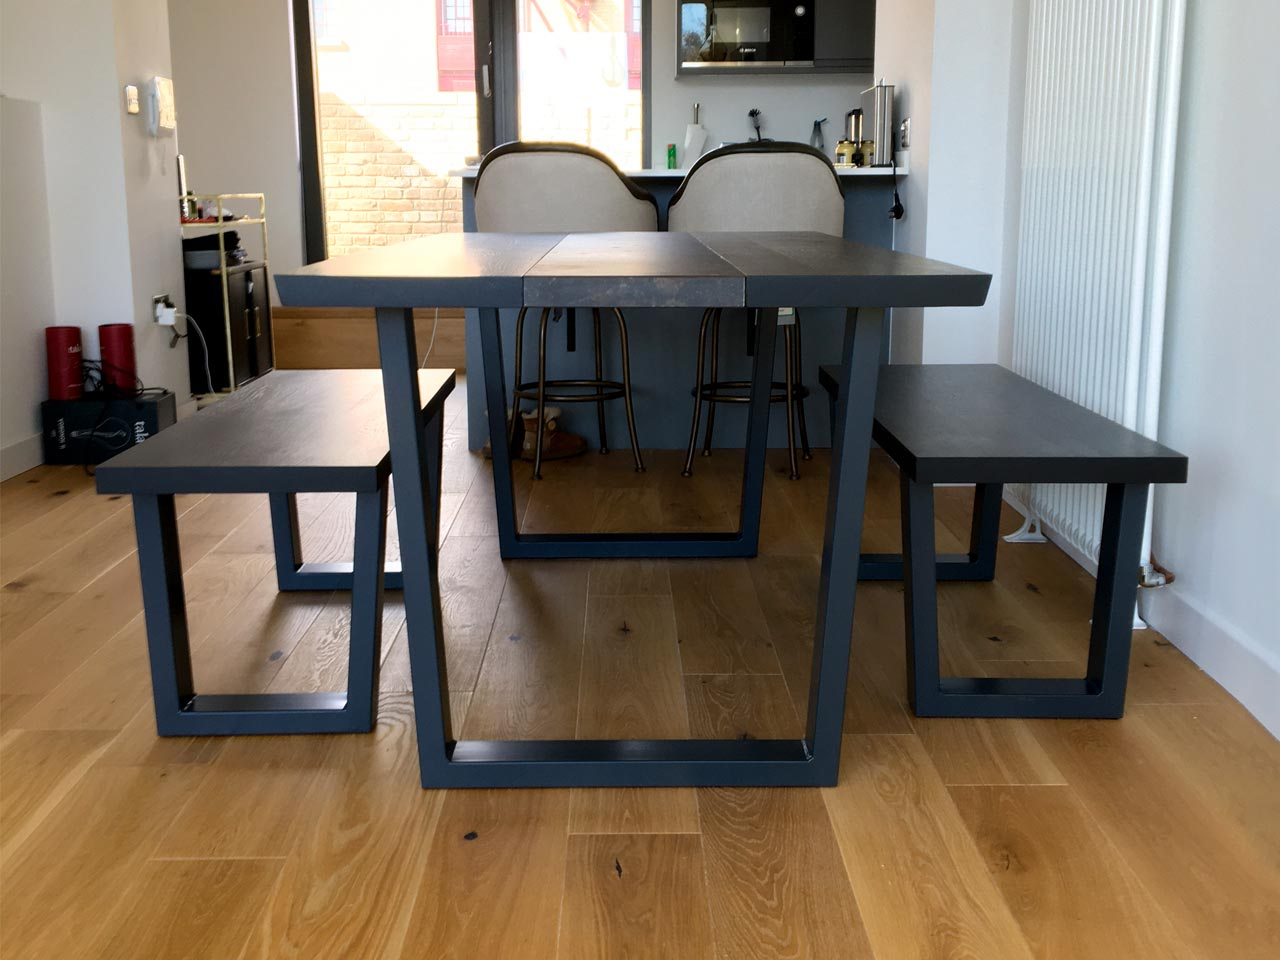 abacus-tables-project-930-pic-6